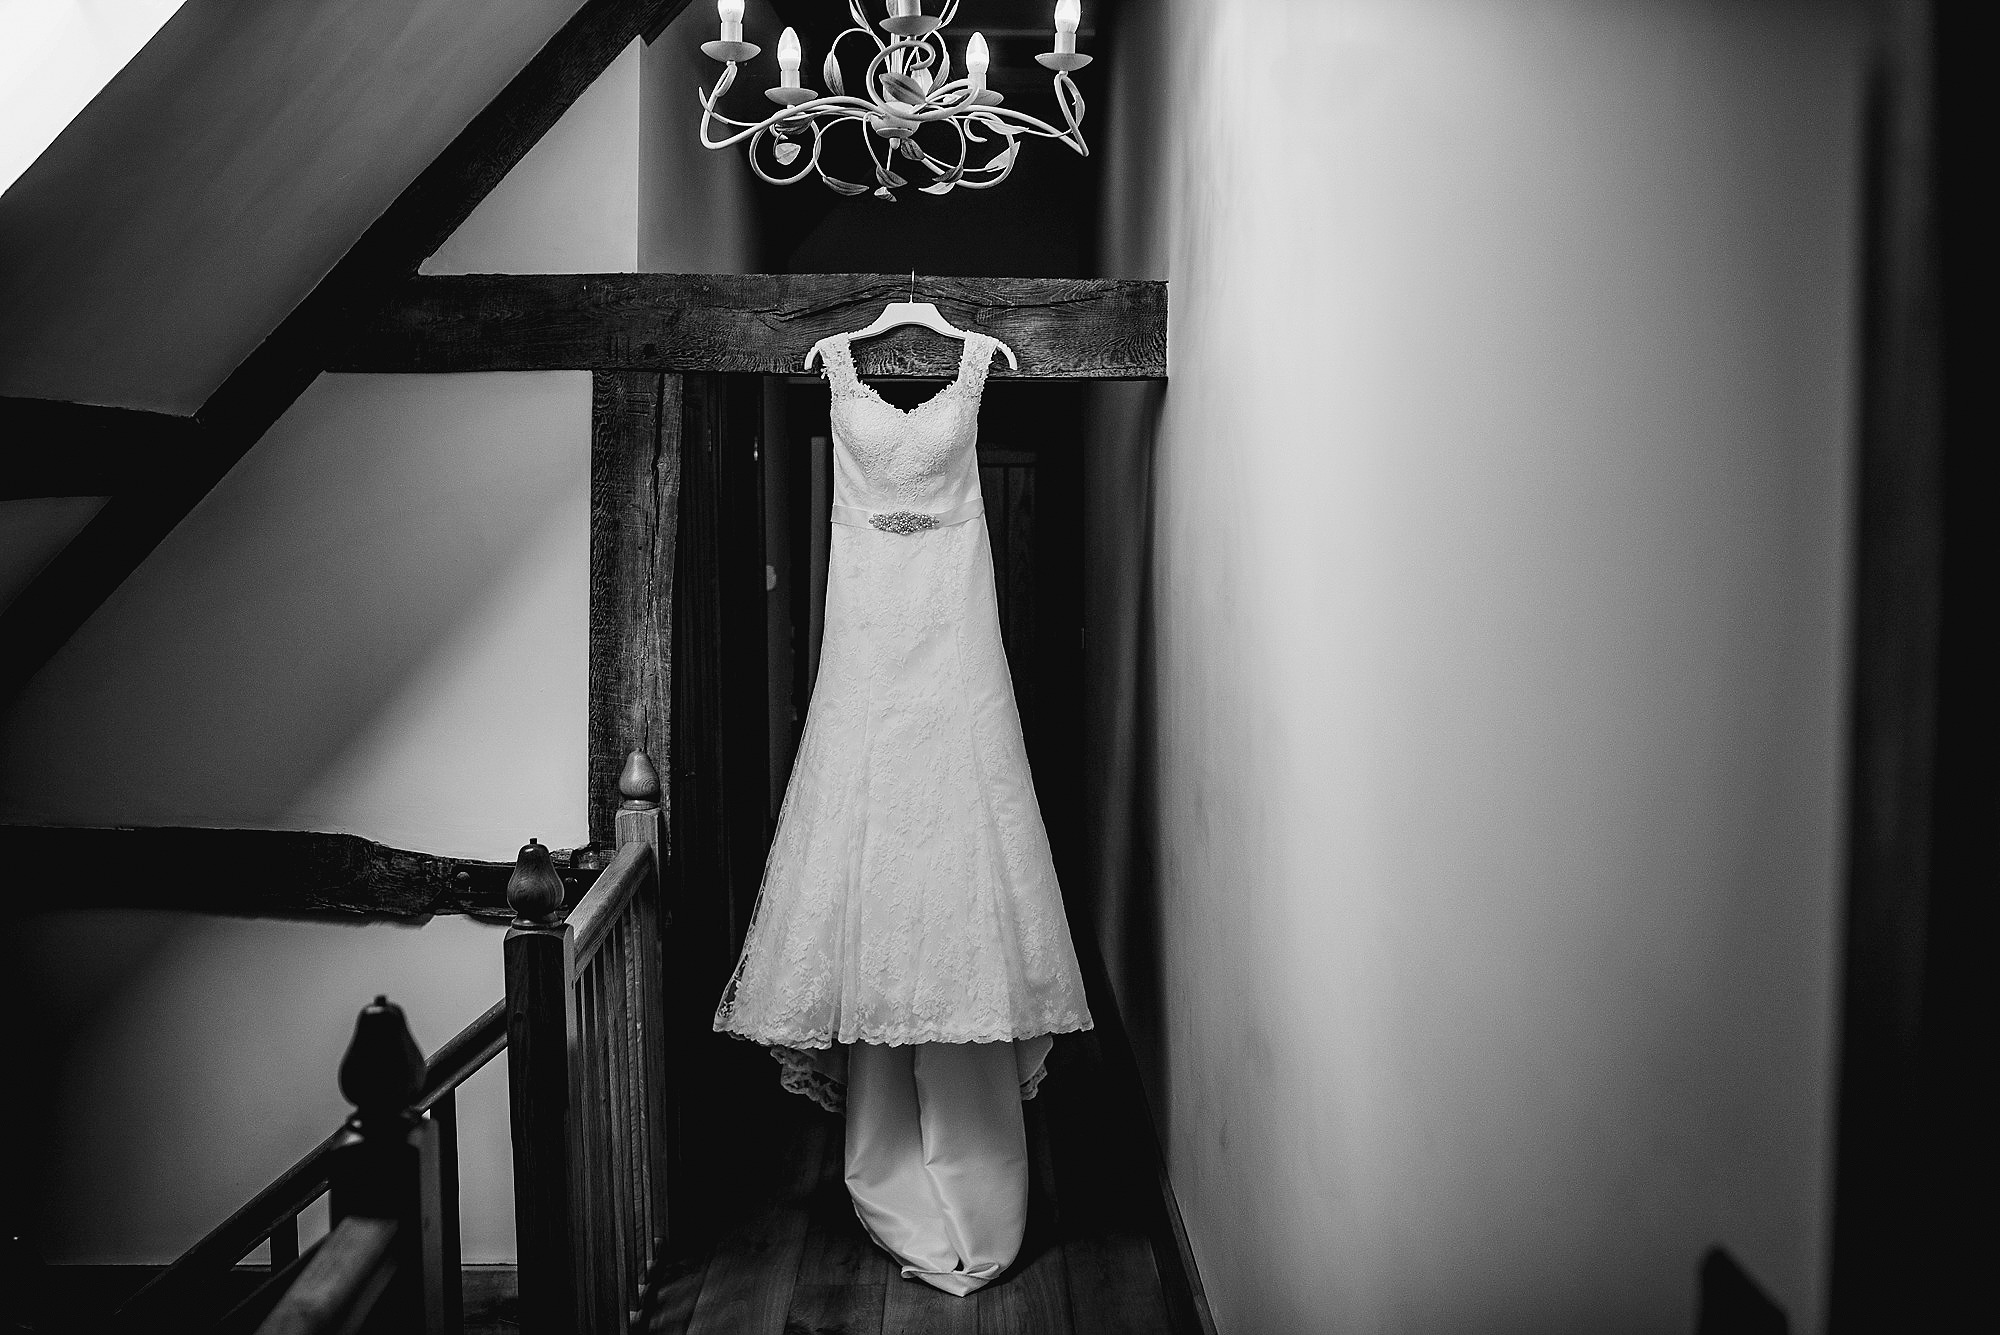 Wedding dress at Flanesford Priory